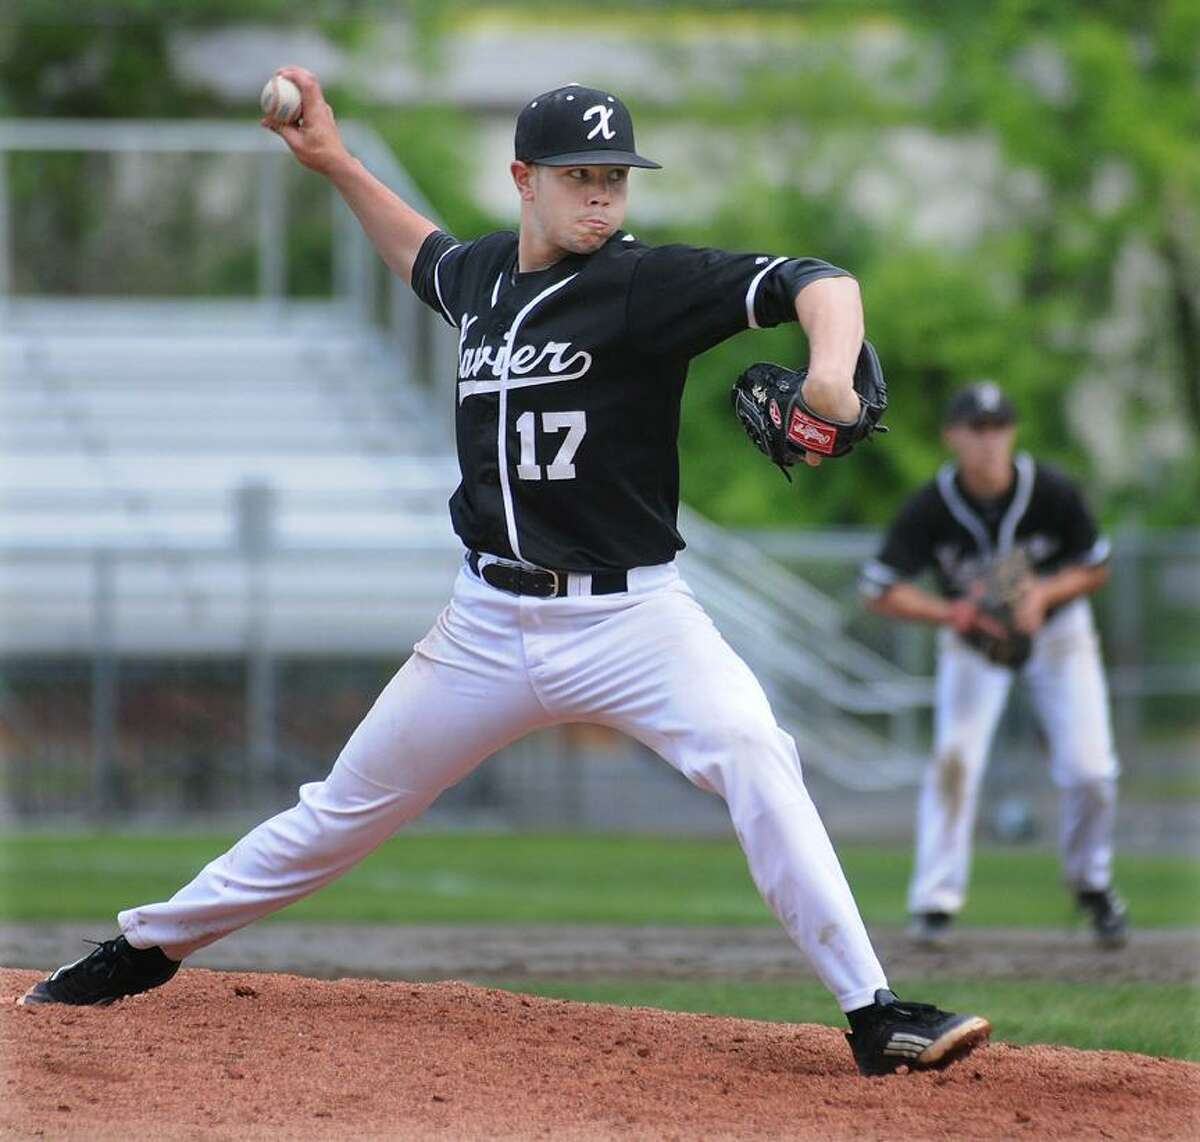 Catherine Avalone/The Middletown PressXavier senior pitcher Benjamin Criscuolo on the mound at Pomfret Stadium at Palmer Field delivers a 8-1 win for the Falcons over Hamden Thursday afternoon in Middletown.